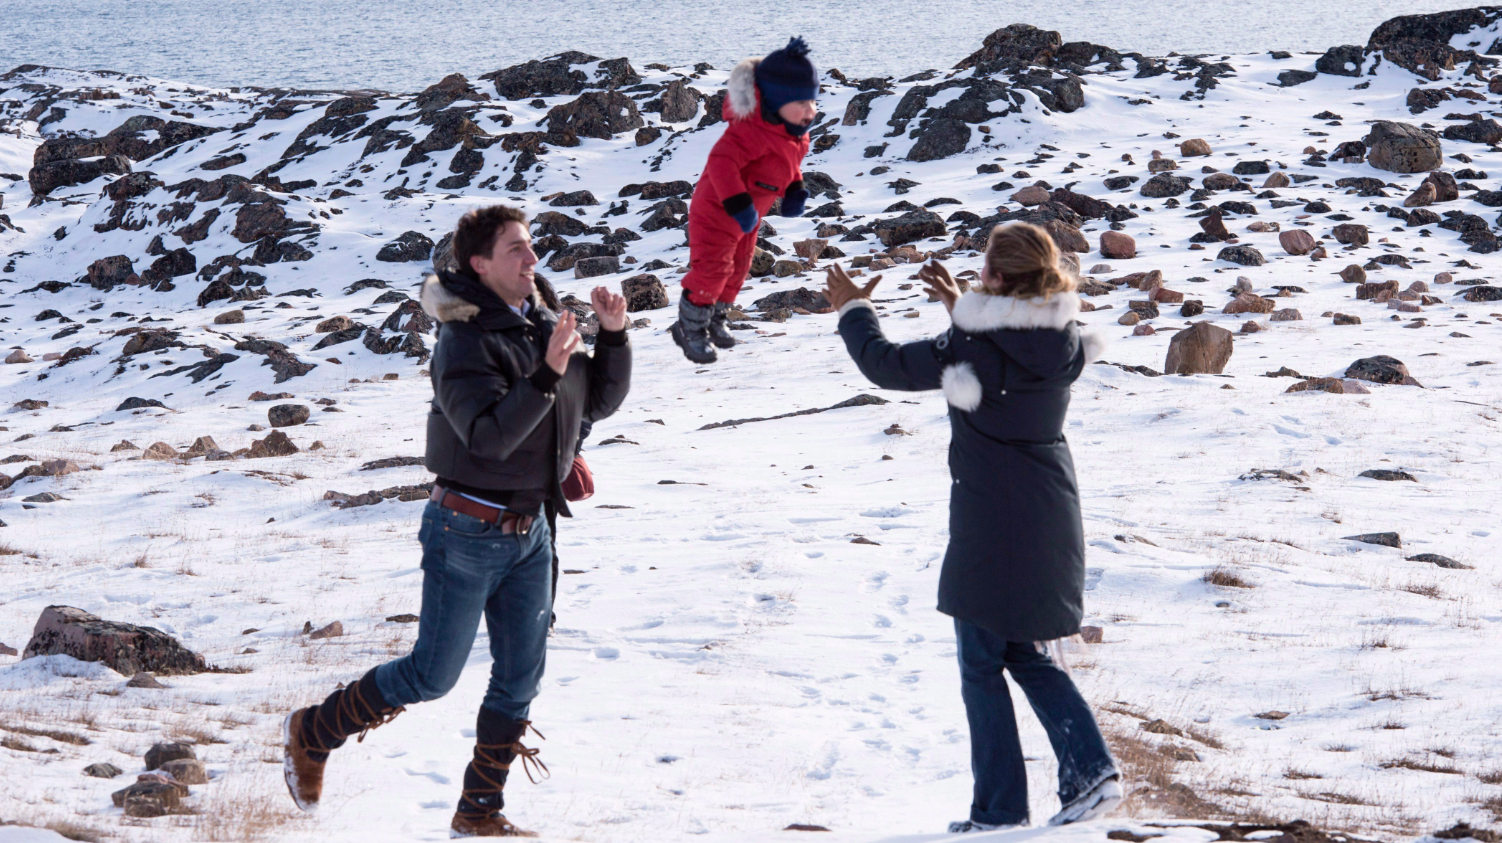 Prime Minister-designate Justin Trudeau and his wife Sophie Gregoire-Trudeau with thier youngest son Hadrien in the Arctic Canadian city of Iqaluit on October 10, 2015. (Paul Chiasson/The Canadian Press)